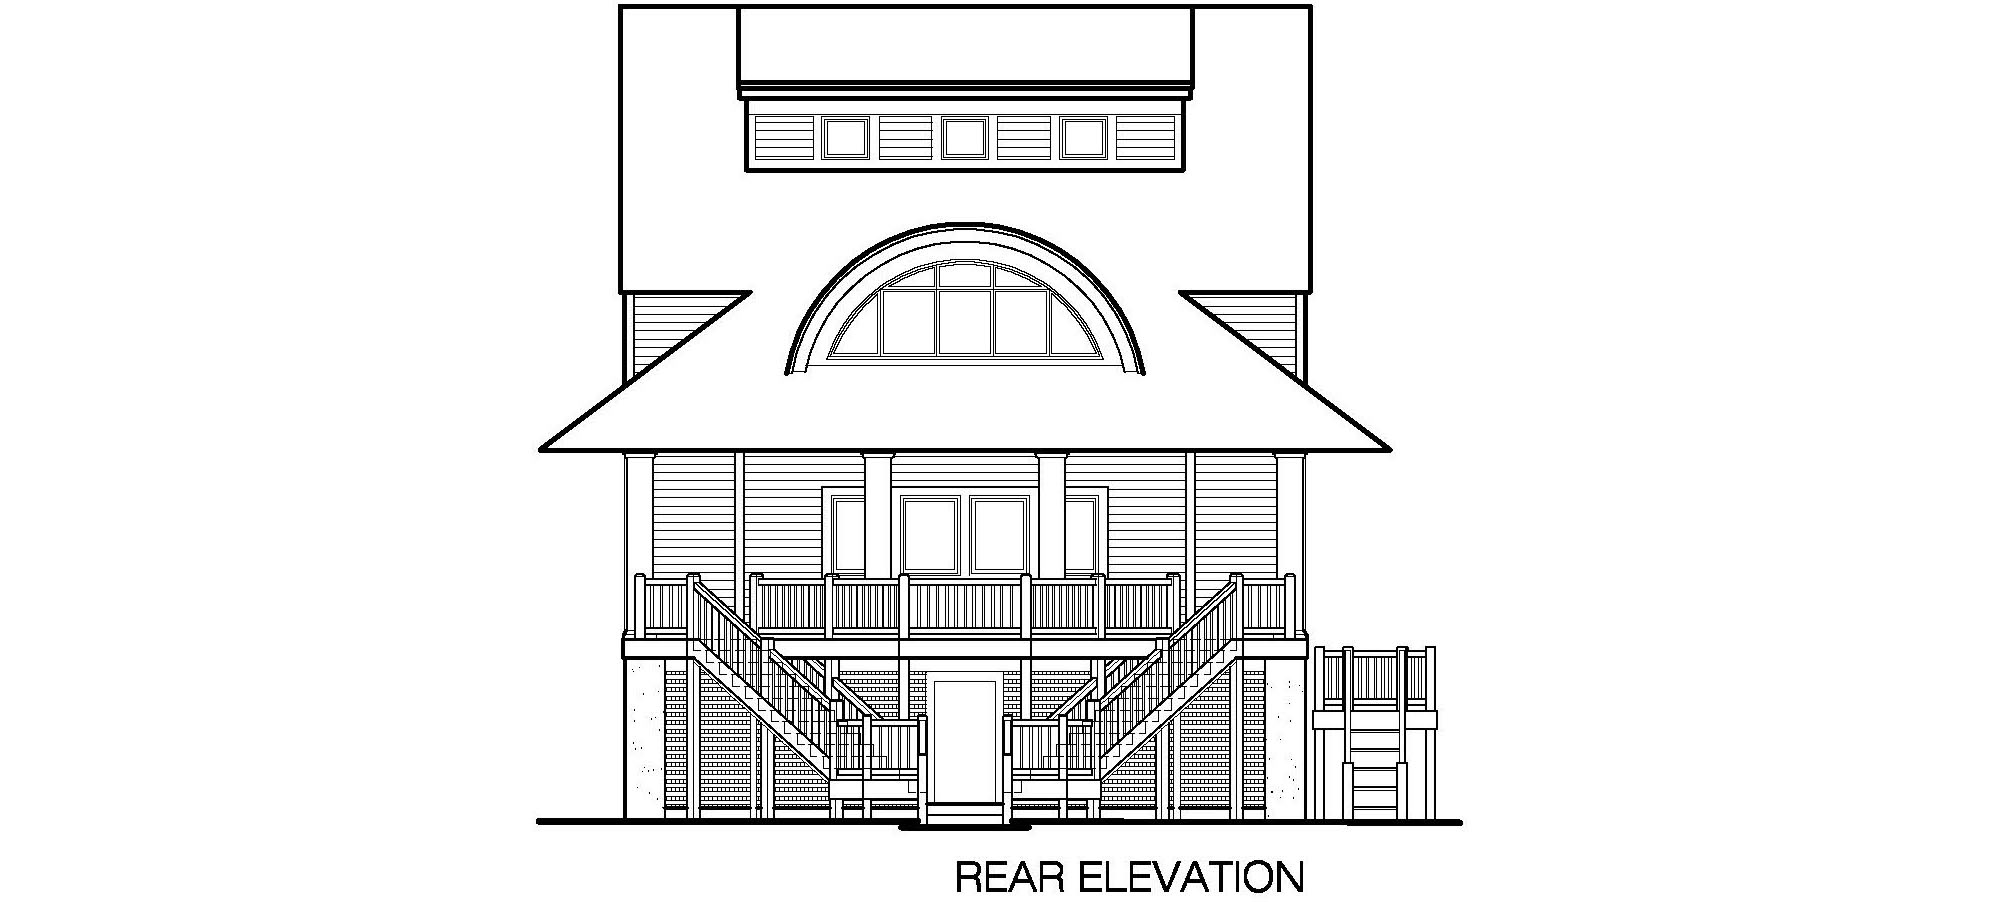 3 Story Beach House Plans With Elevator 3 Free House Plans Image